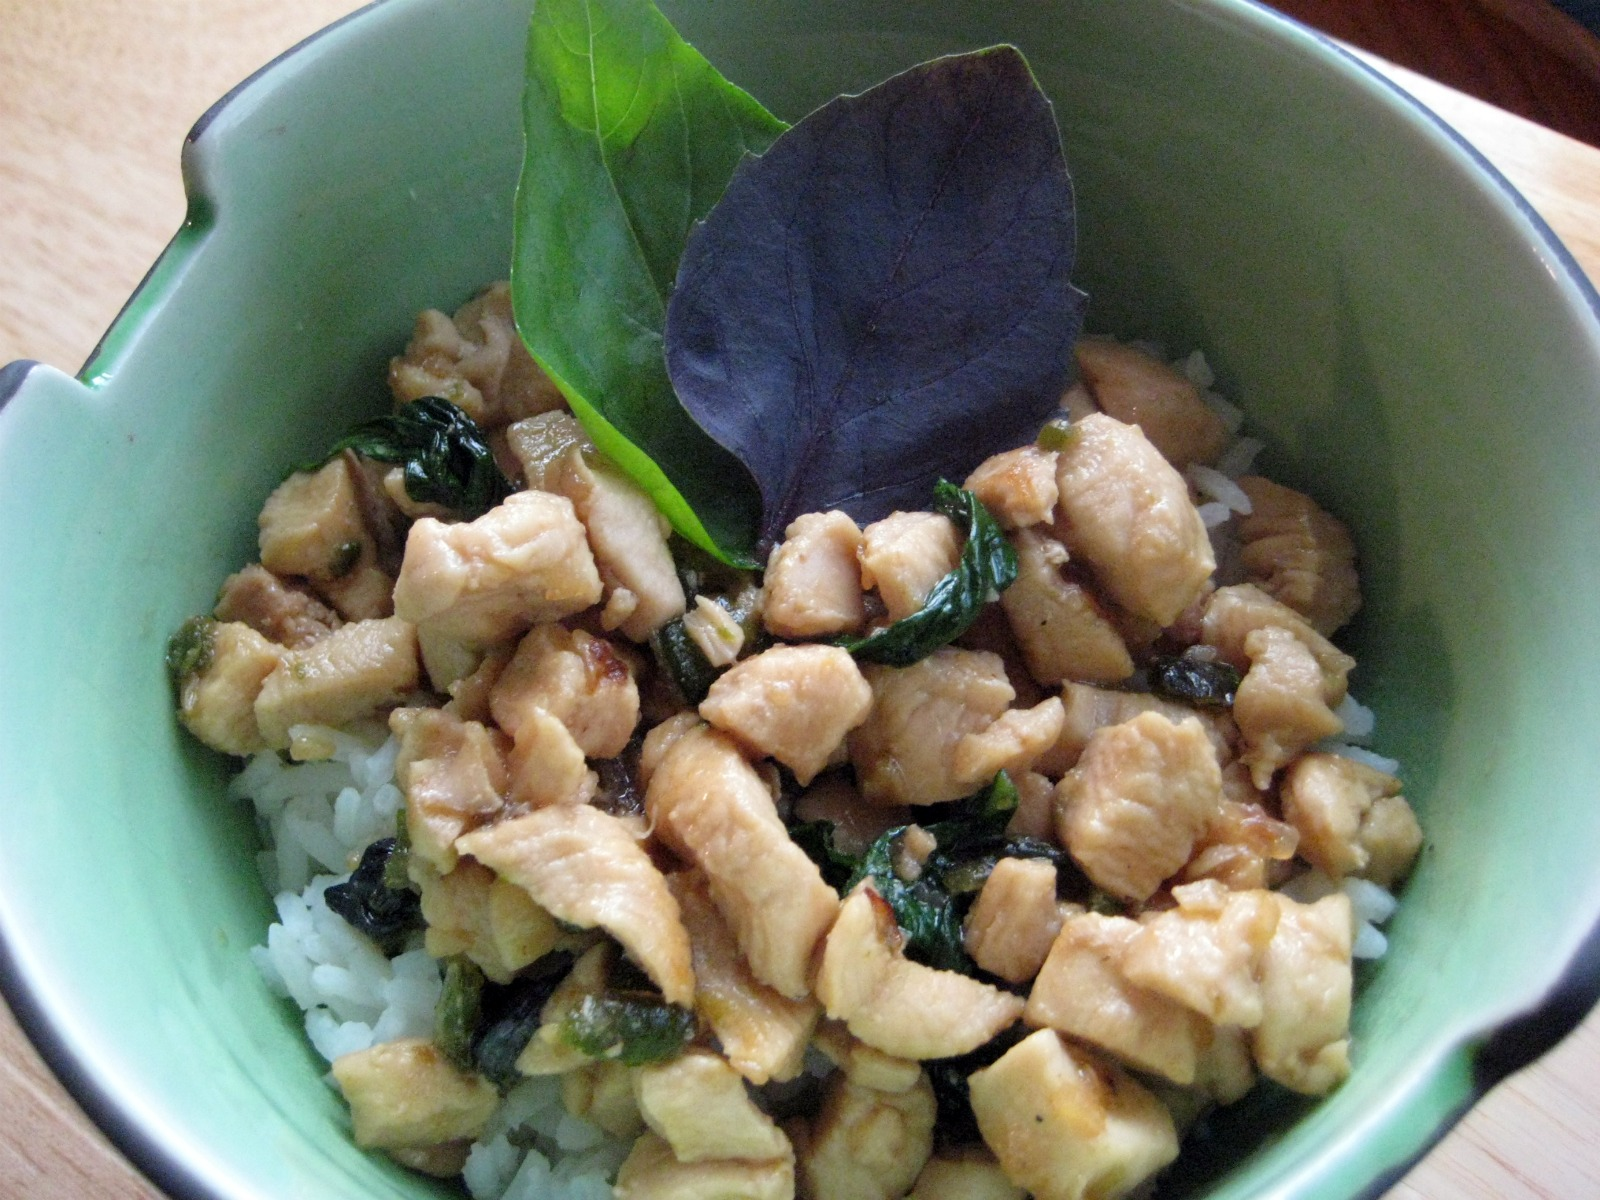 I'll Have Seconds: Thai Chicken and Basil Stir-Fry